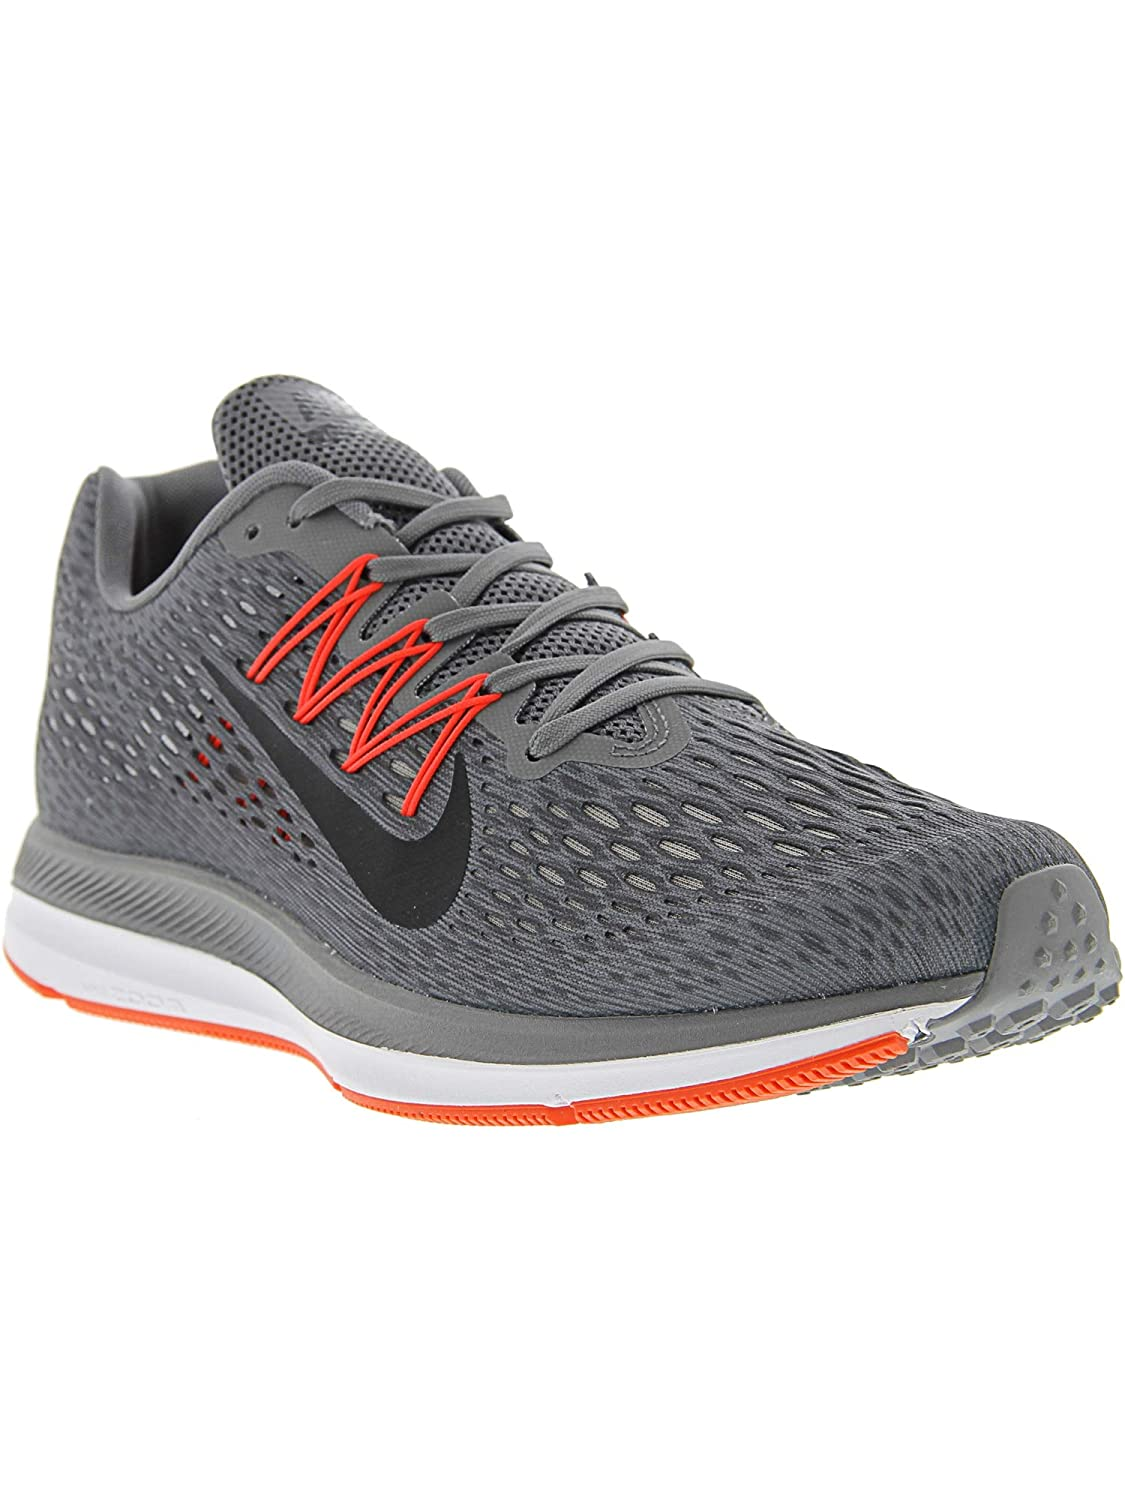 Nike Men s Zoom Winflo Running Shoe